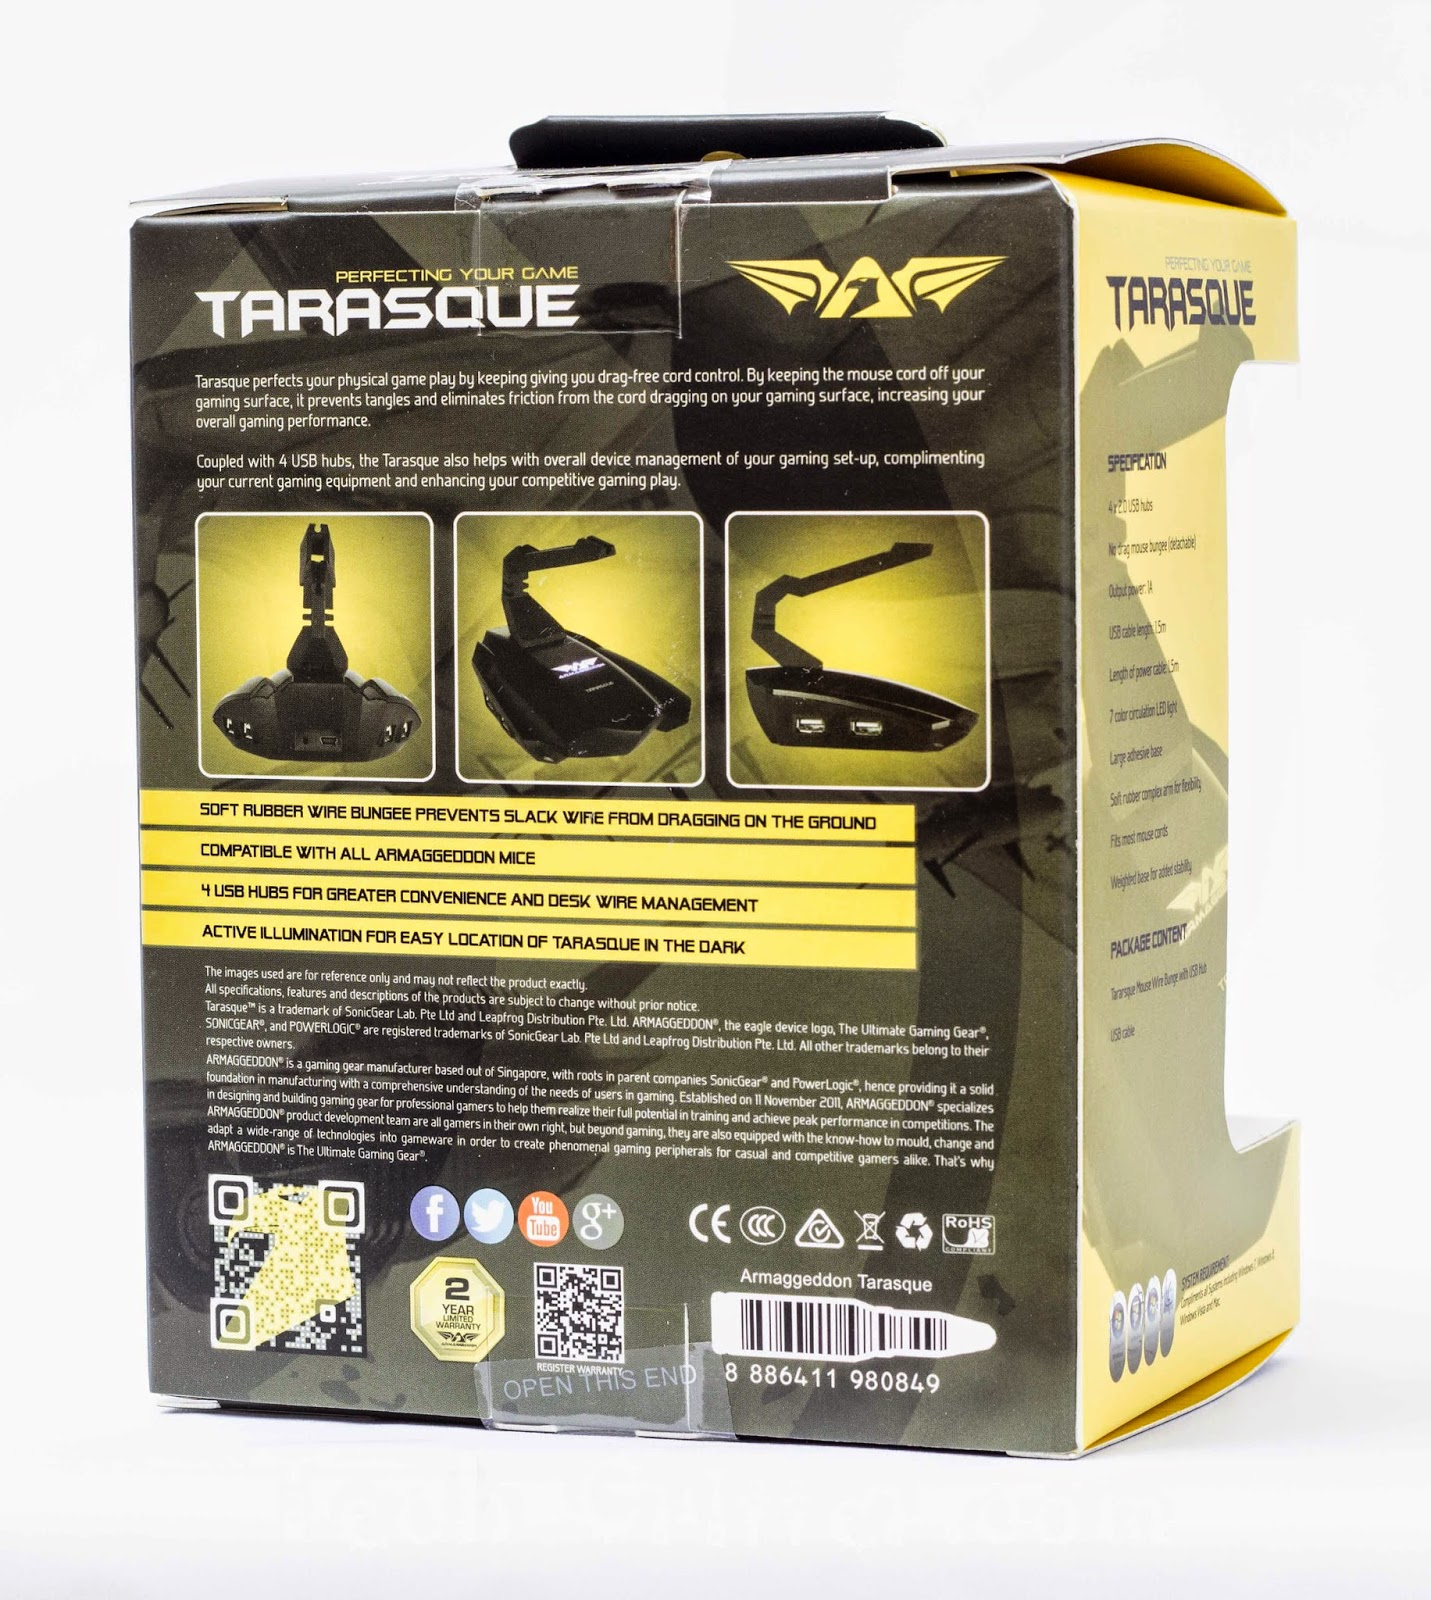 Unboxing & Review: Armaggeddon Tarasque Mouse Bungee 34